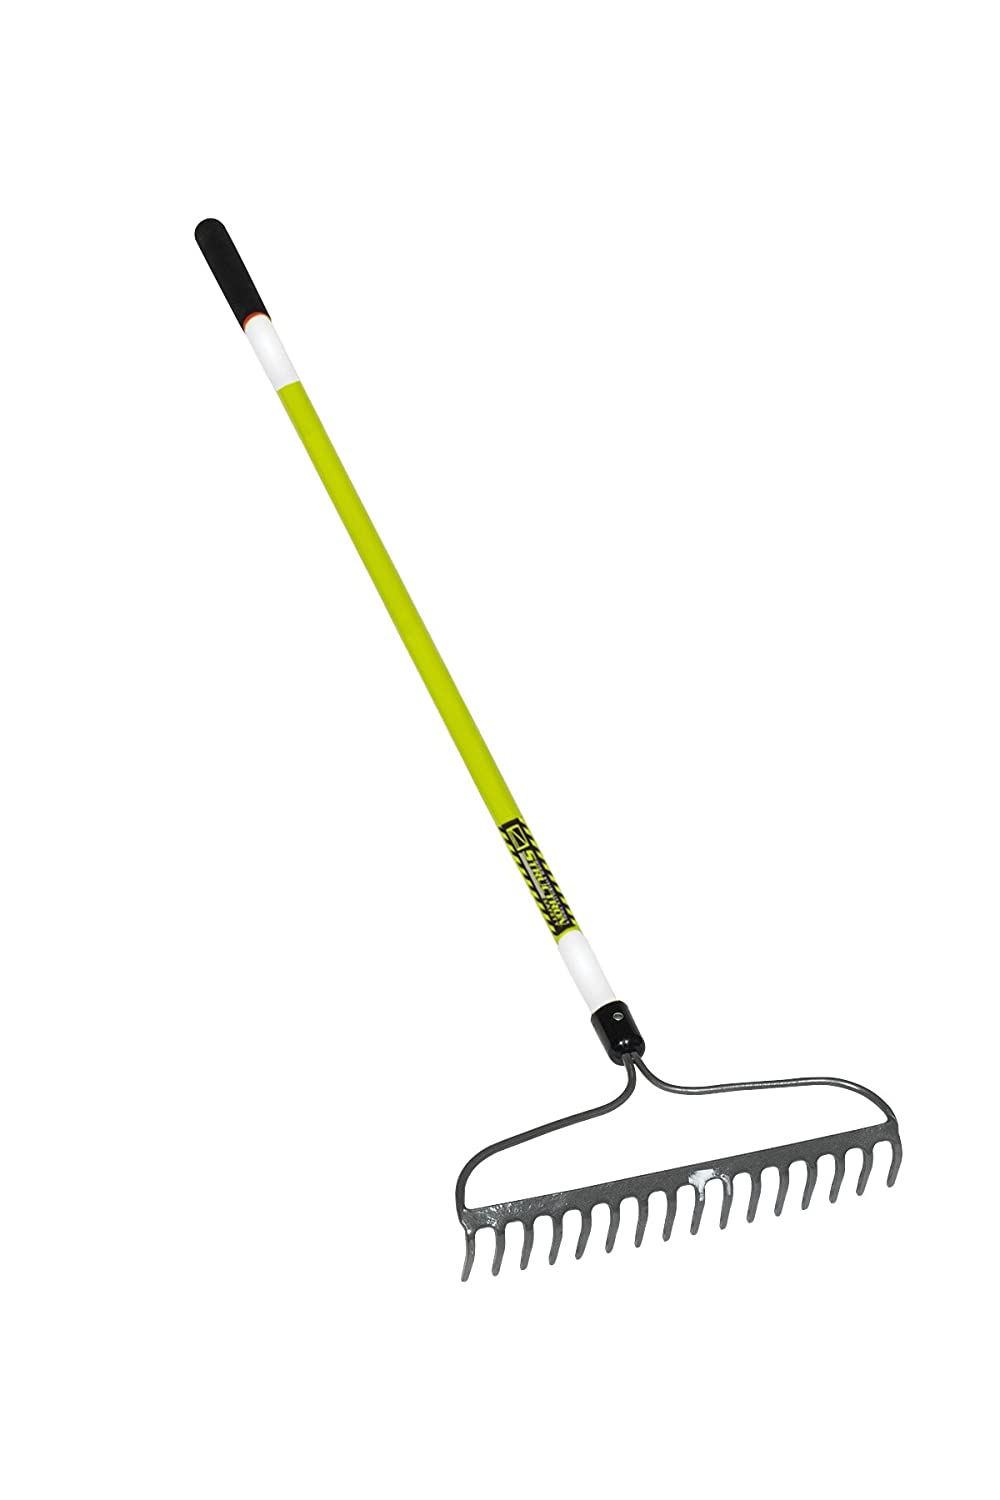 Seymour High quality new MIDWESTStructron 49754 Bow Retroreflective 3M Rake Weekly update with